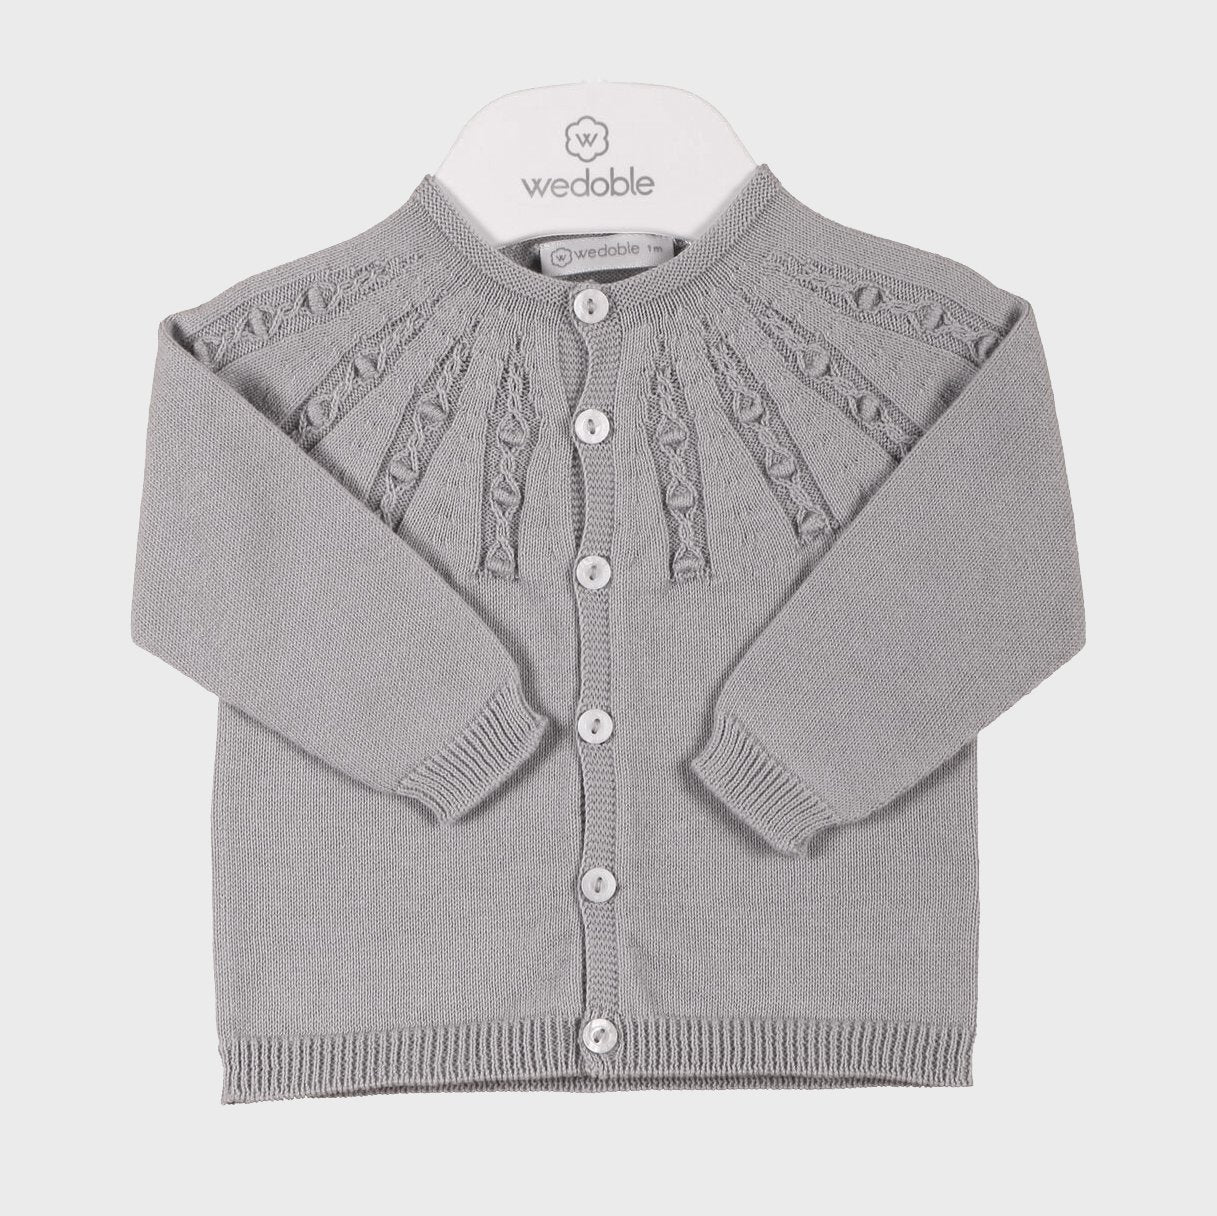 Wedoble Grey Fine Knit Cardigan | Millie and John